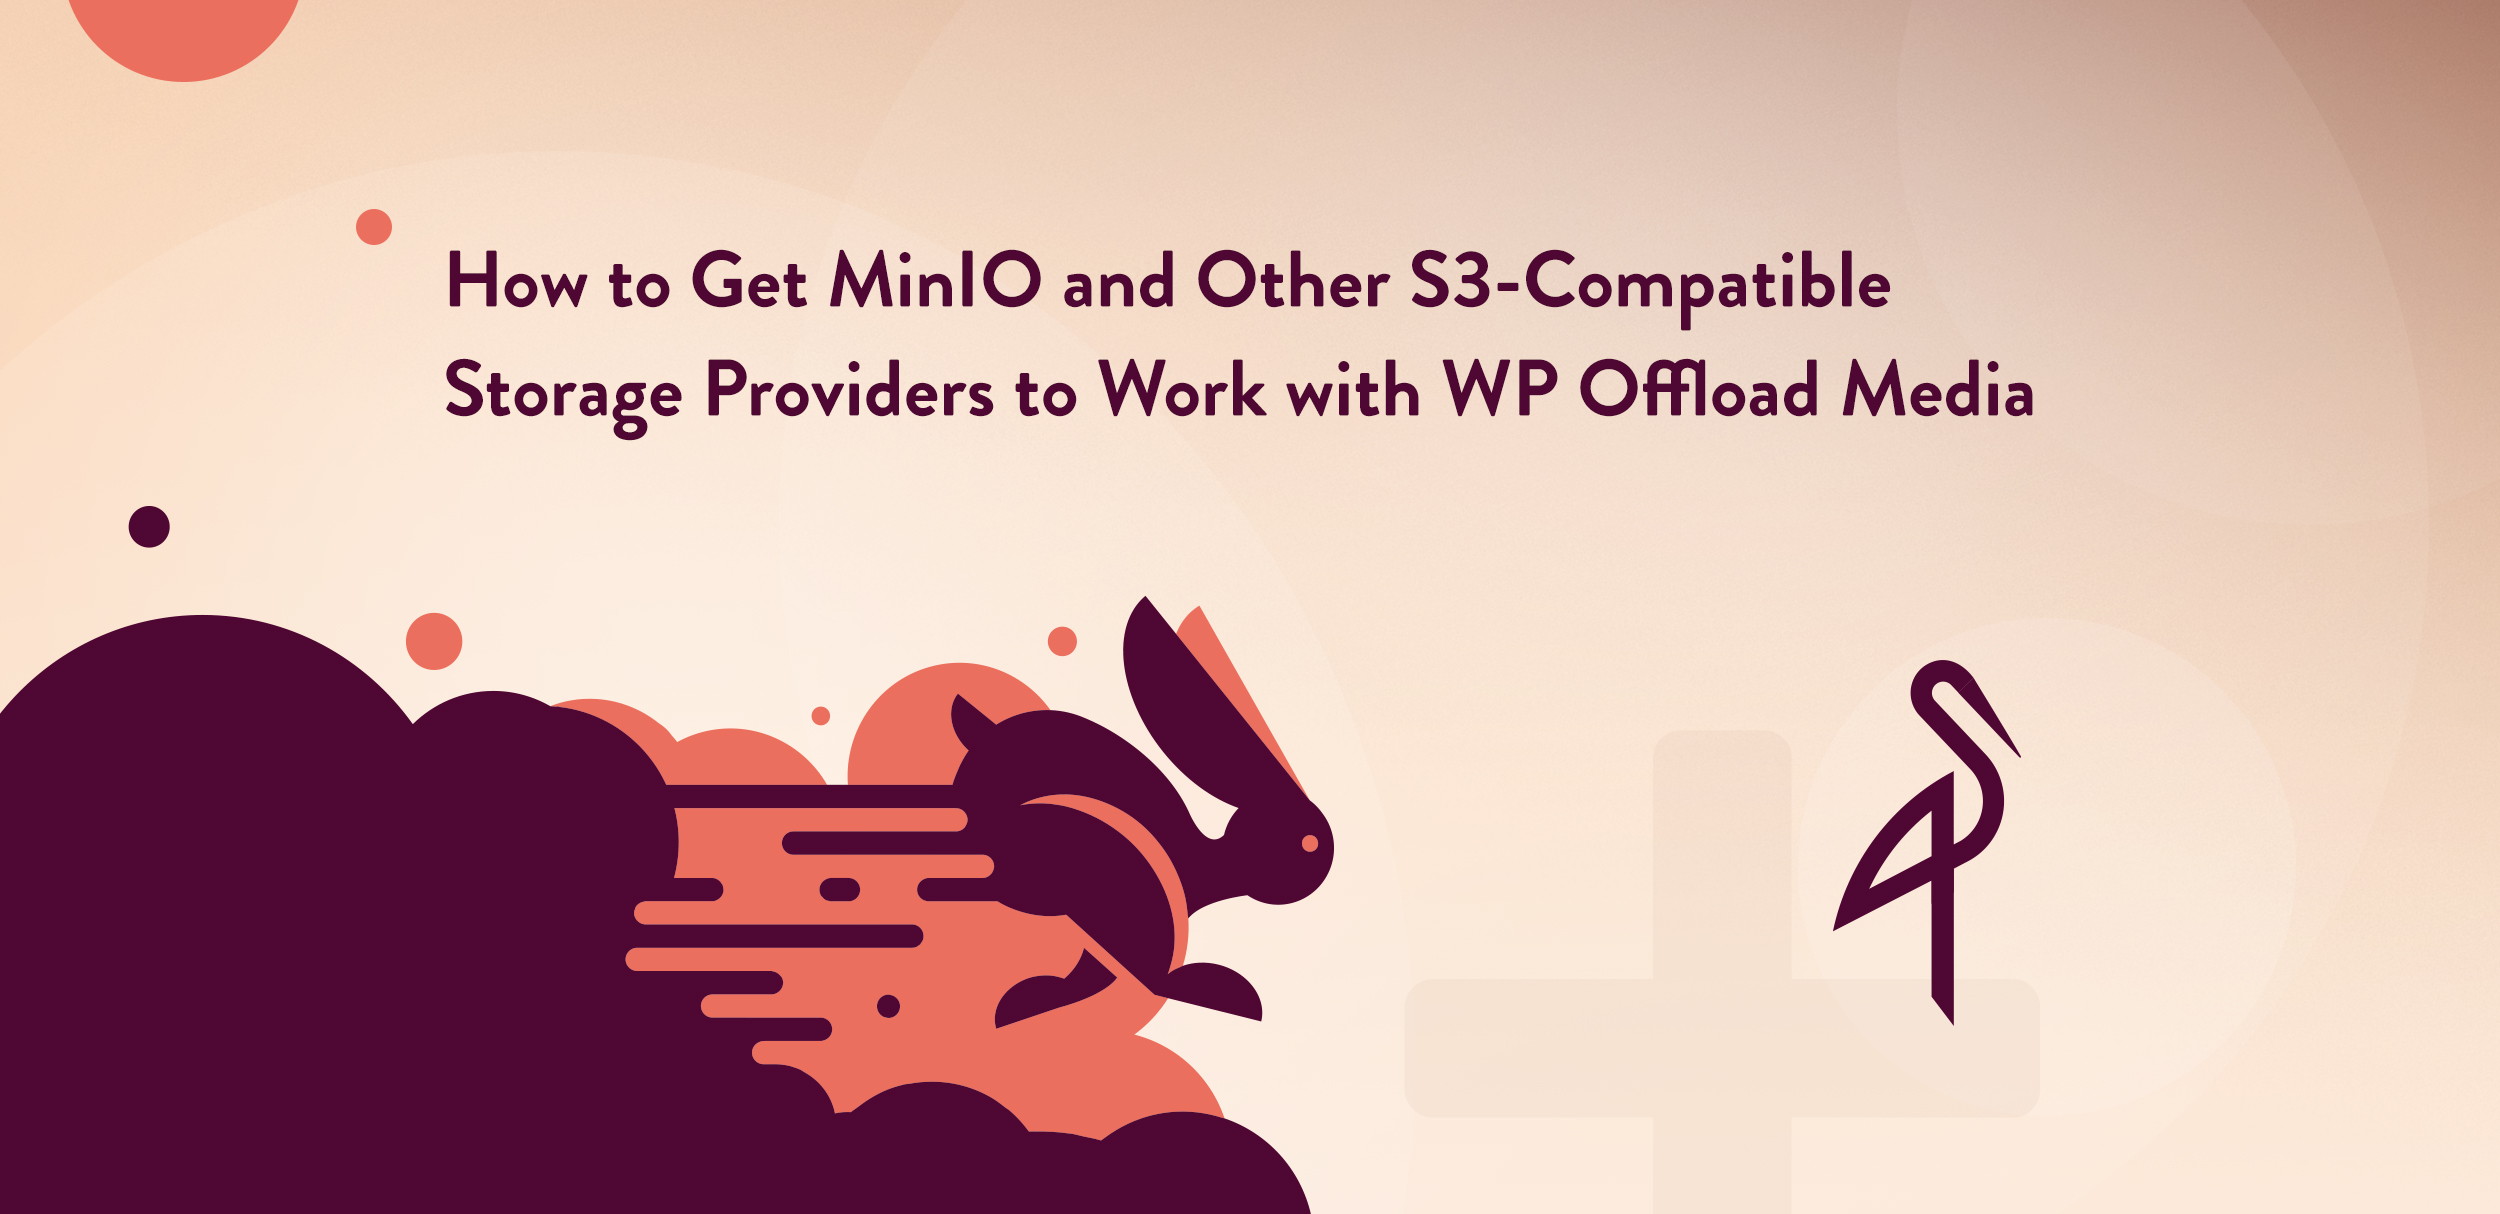 How to Get MinIO and Other S3-Compatible Storage Providers to Work